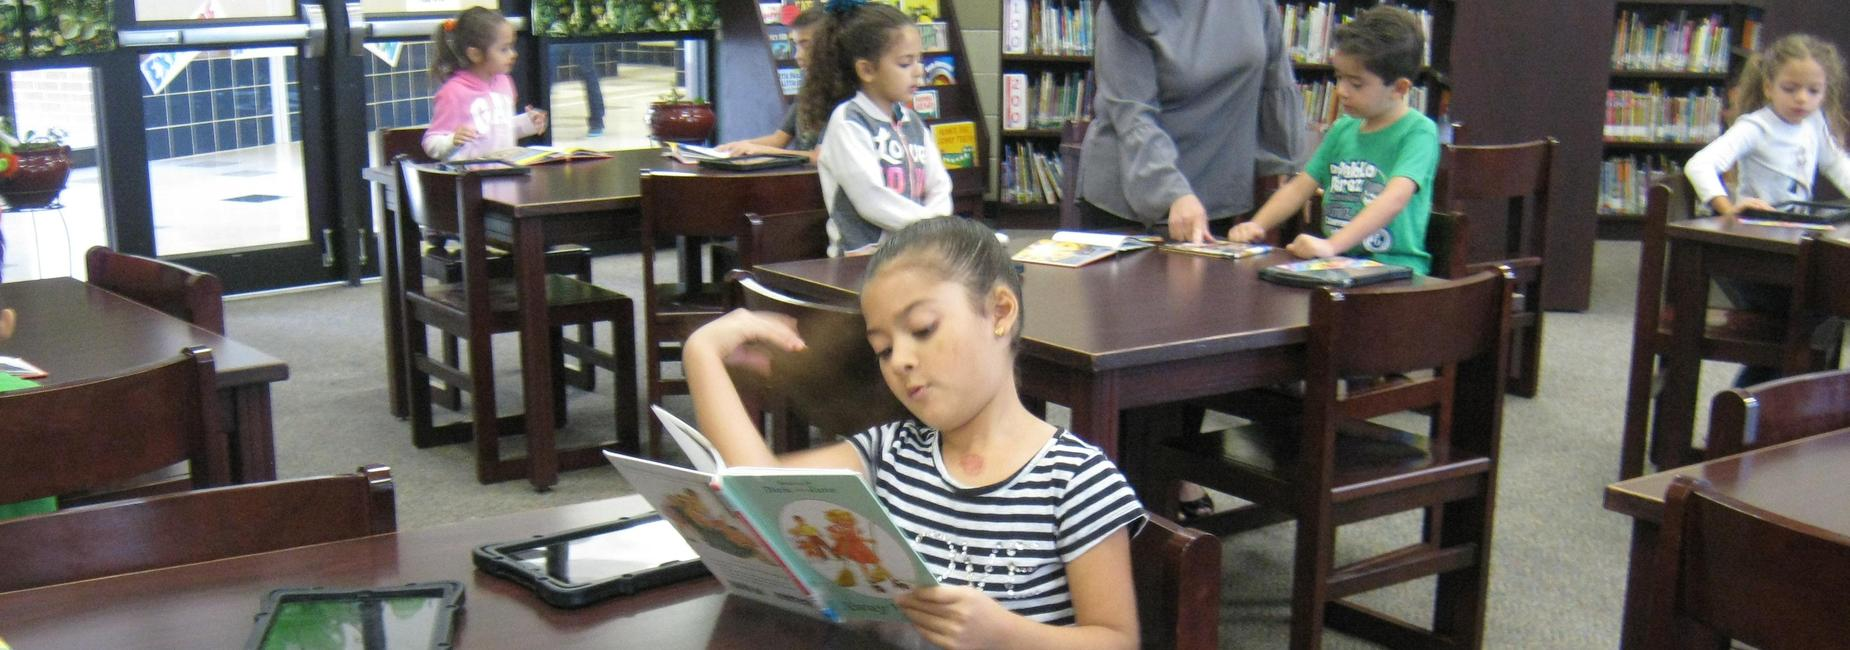 A student reading at the table.